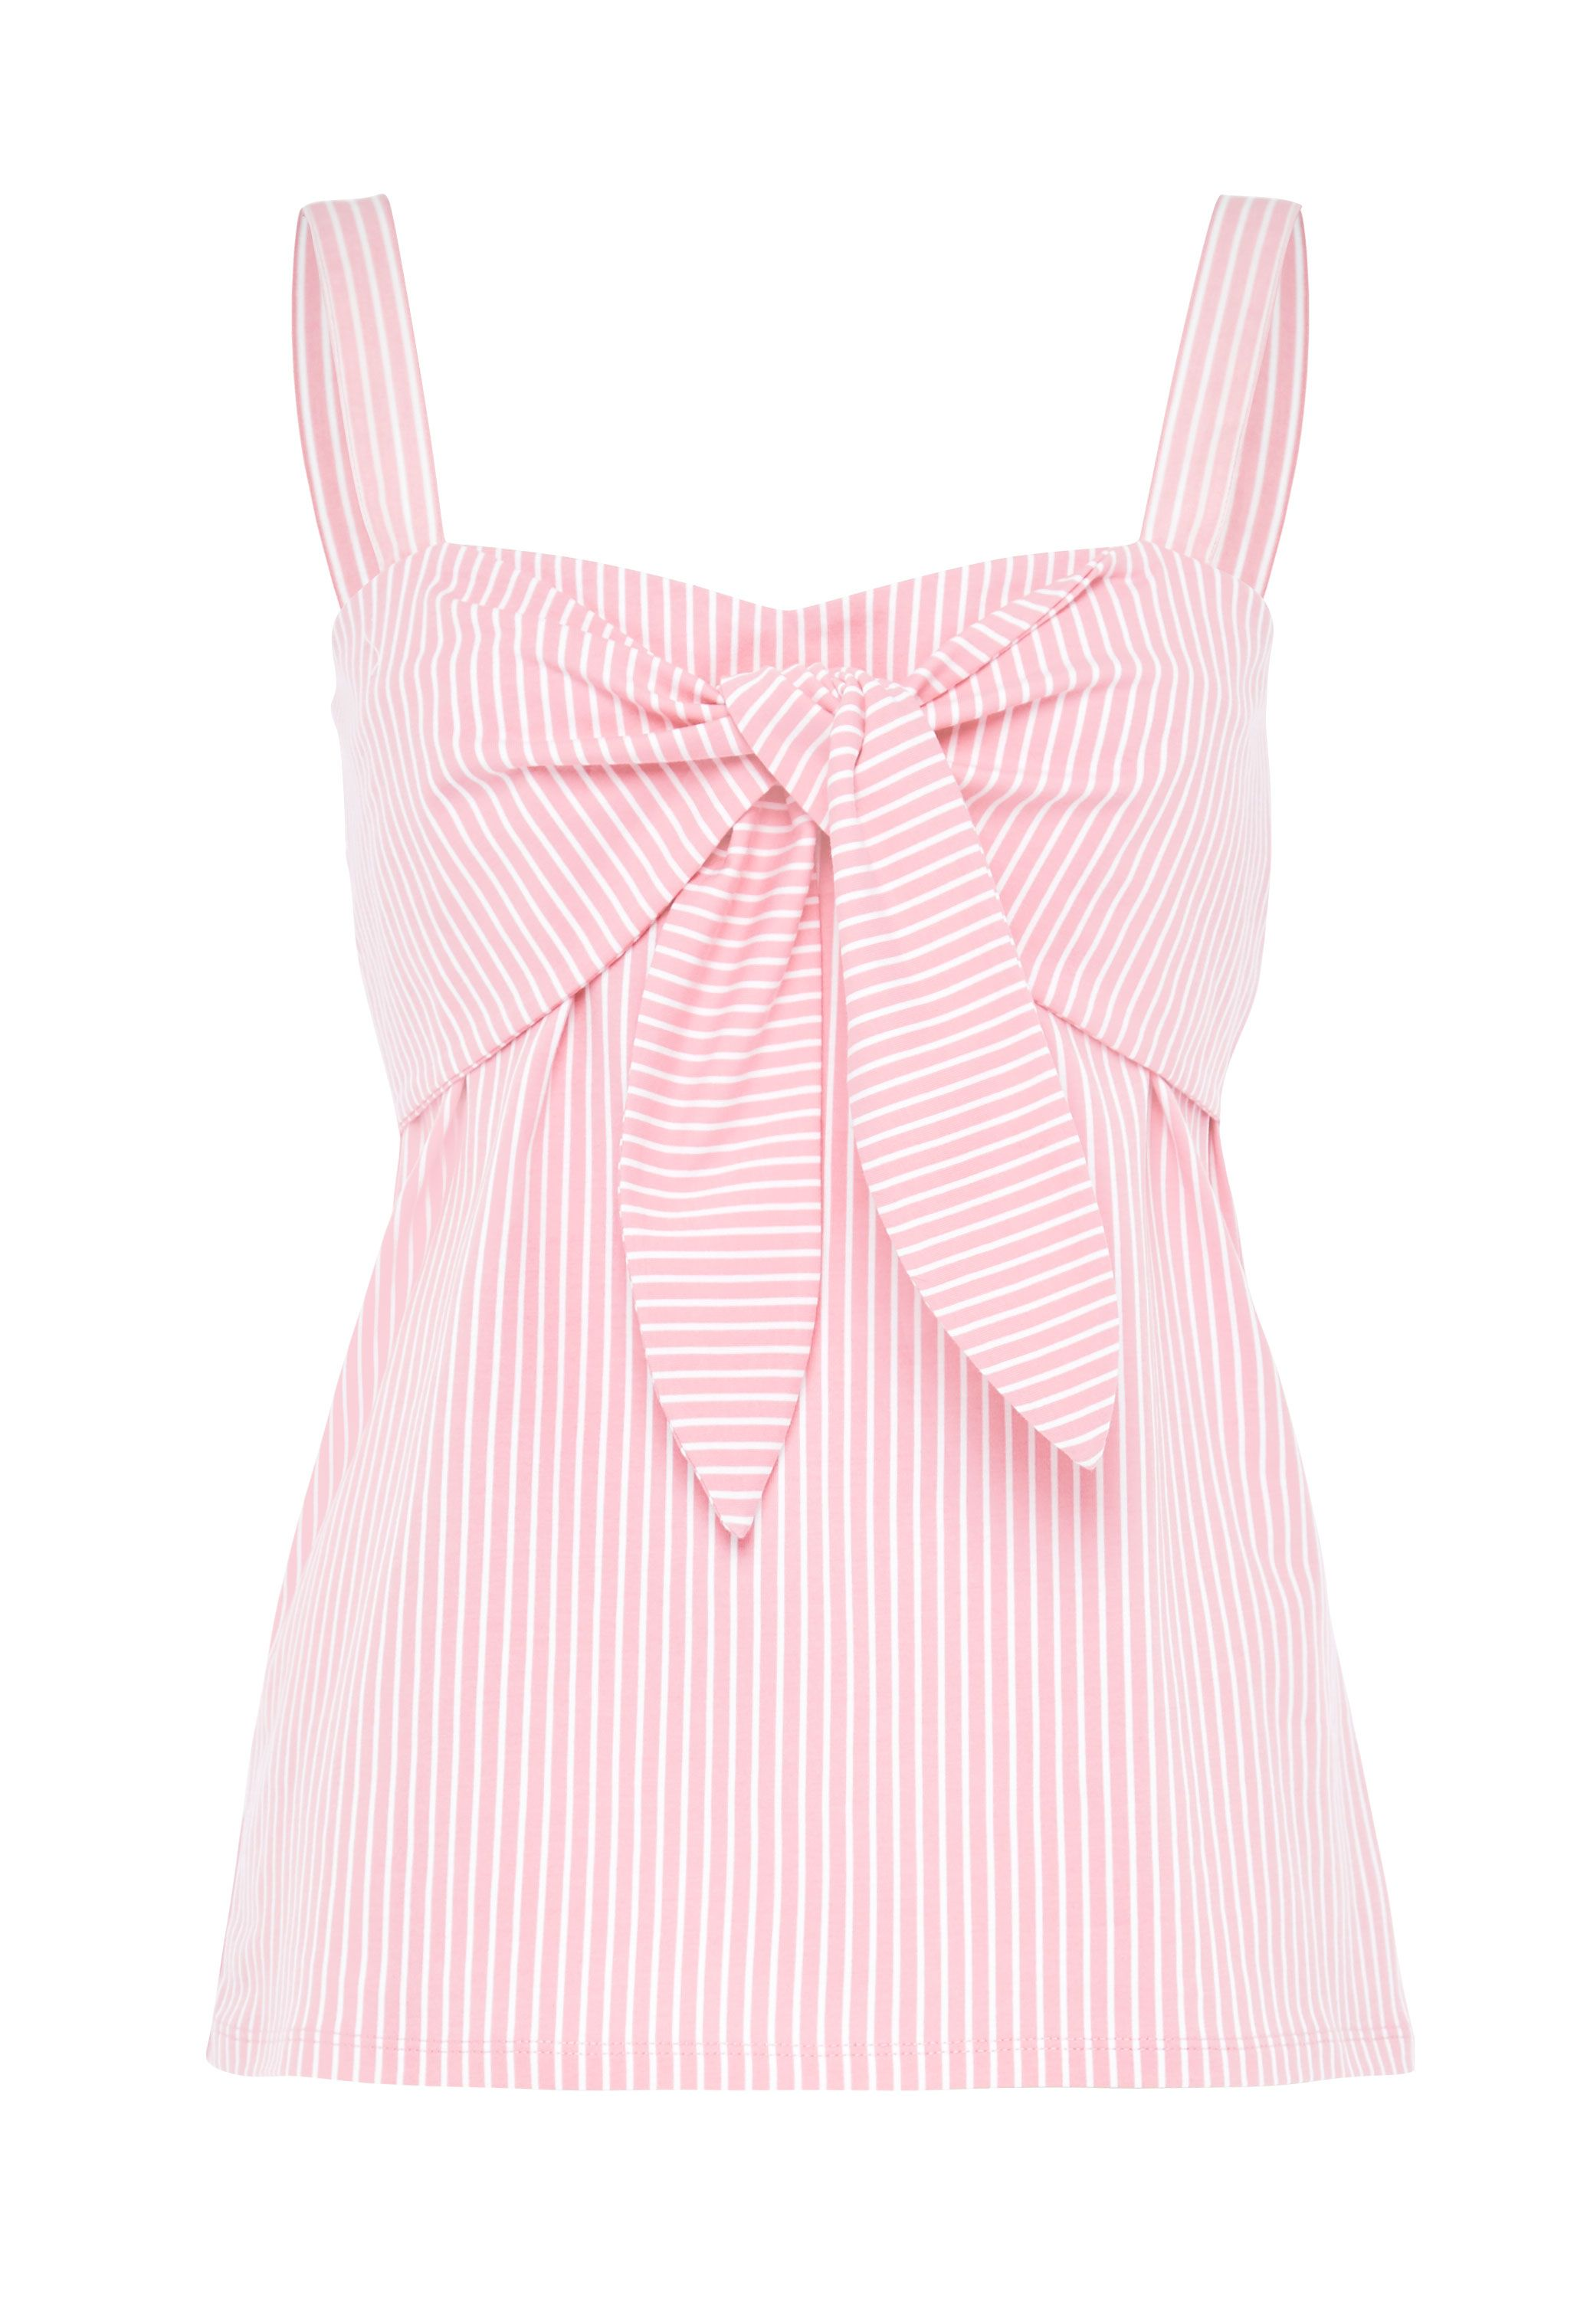 Hallhuber Bustier Top With Knot, Pink